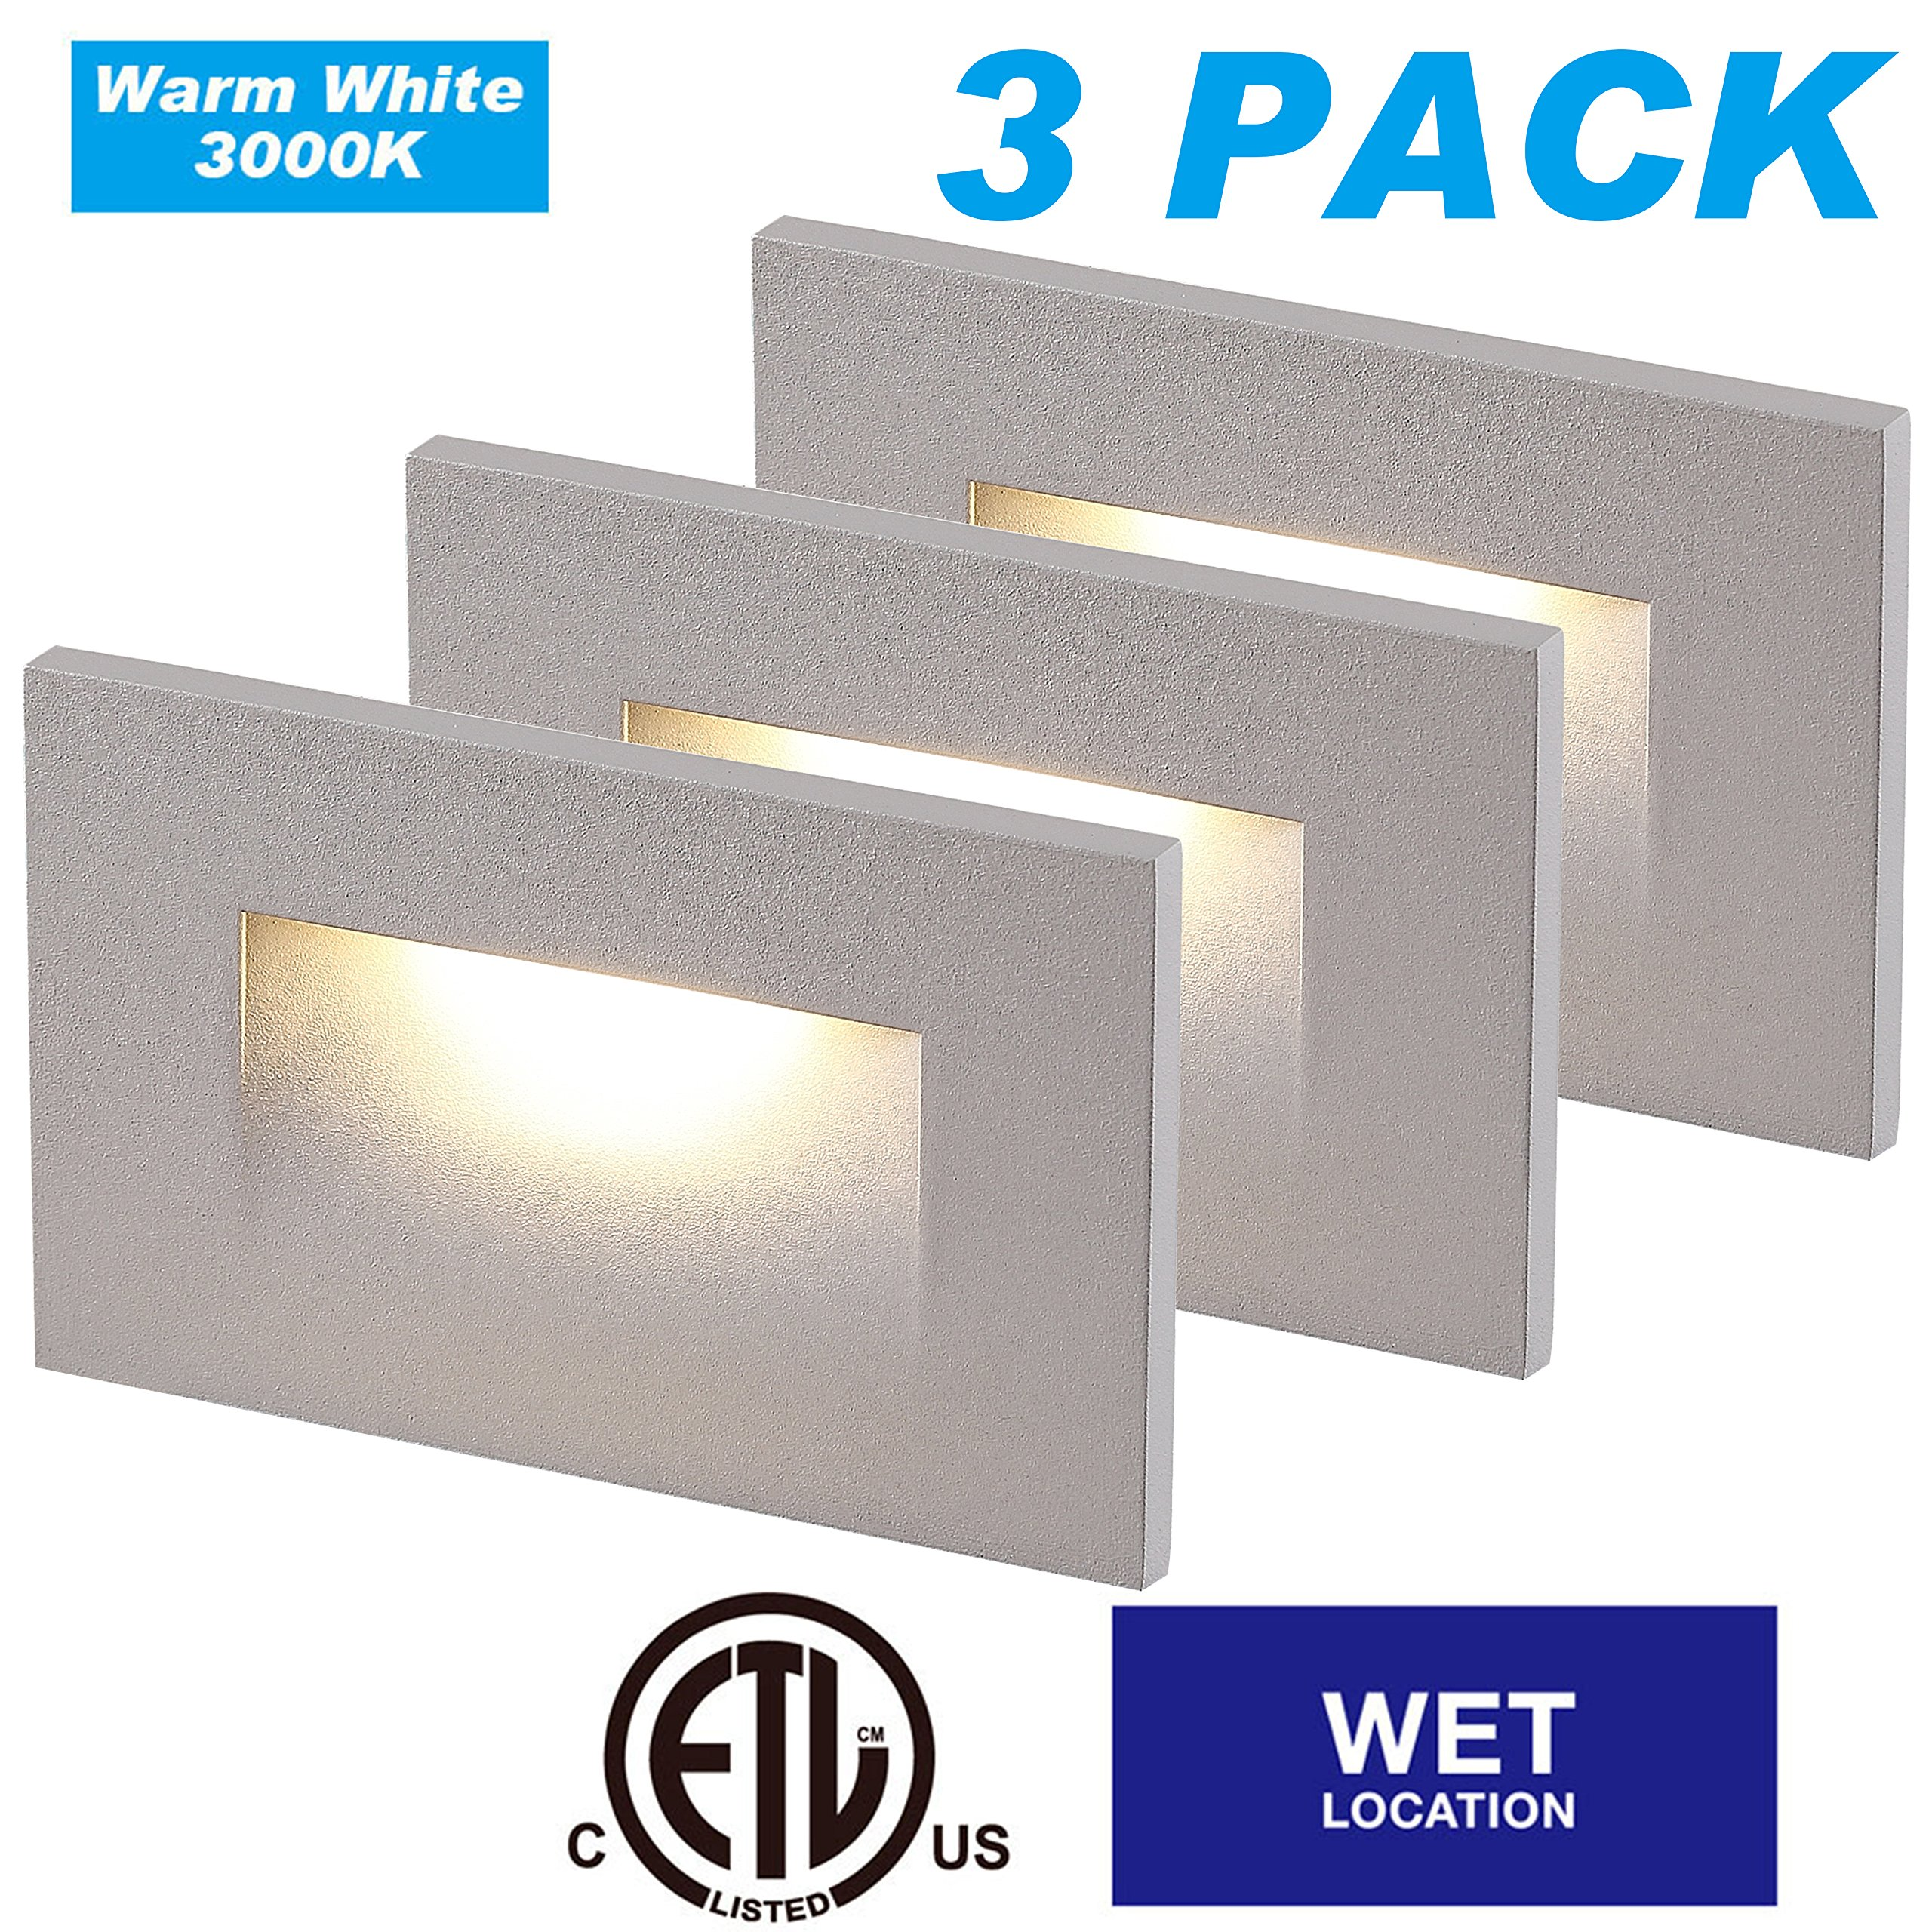 Cloudy Bay LED Indoor Outdoor Step Light,3-Pack,3000K Warm White,Stair Light,White Finish by Cloudy Bay